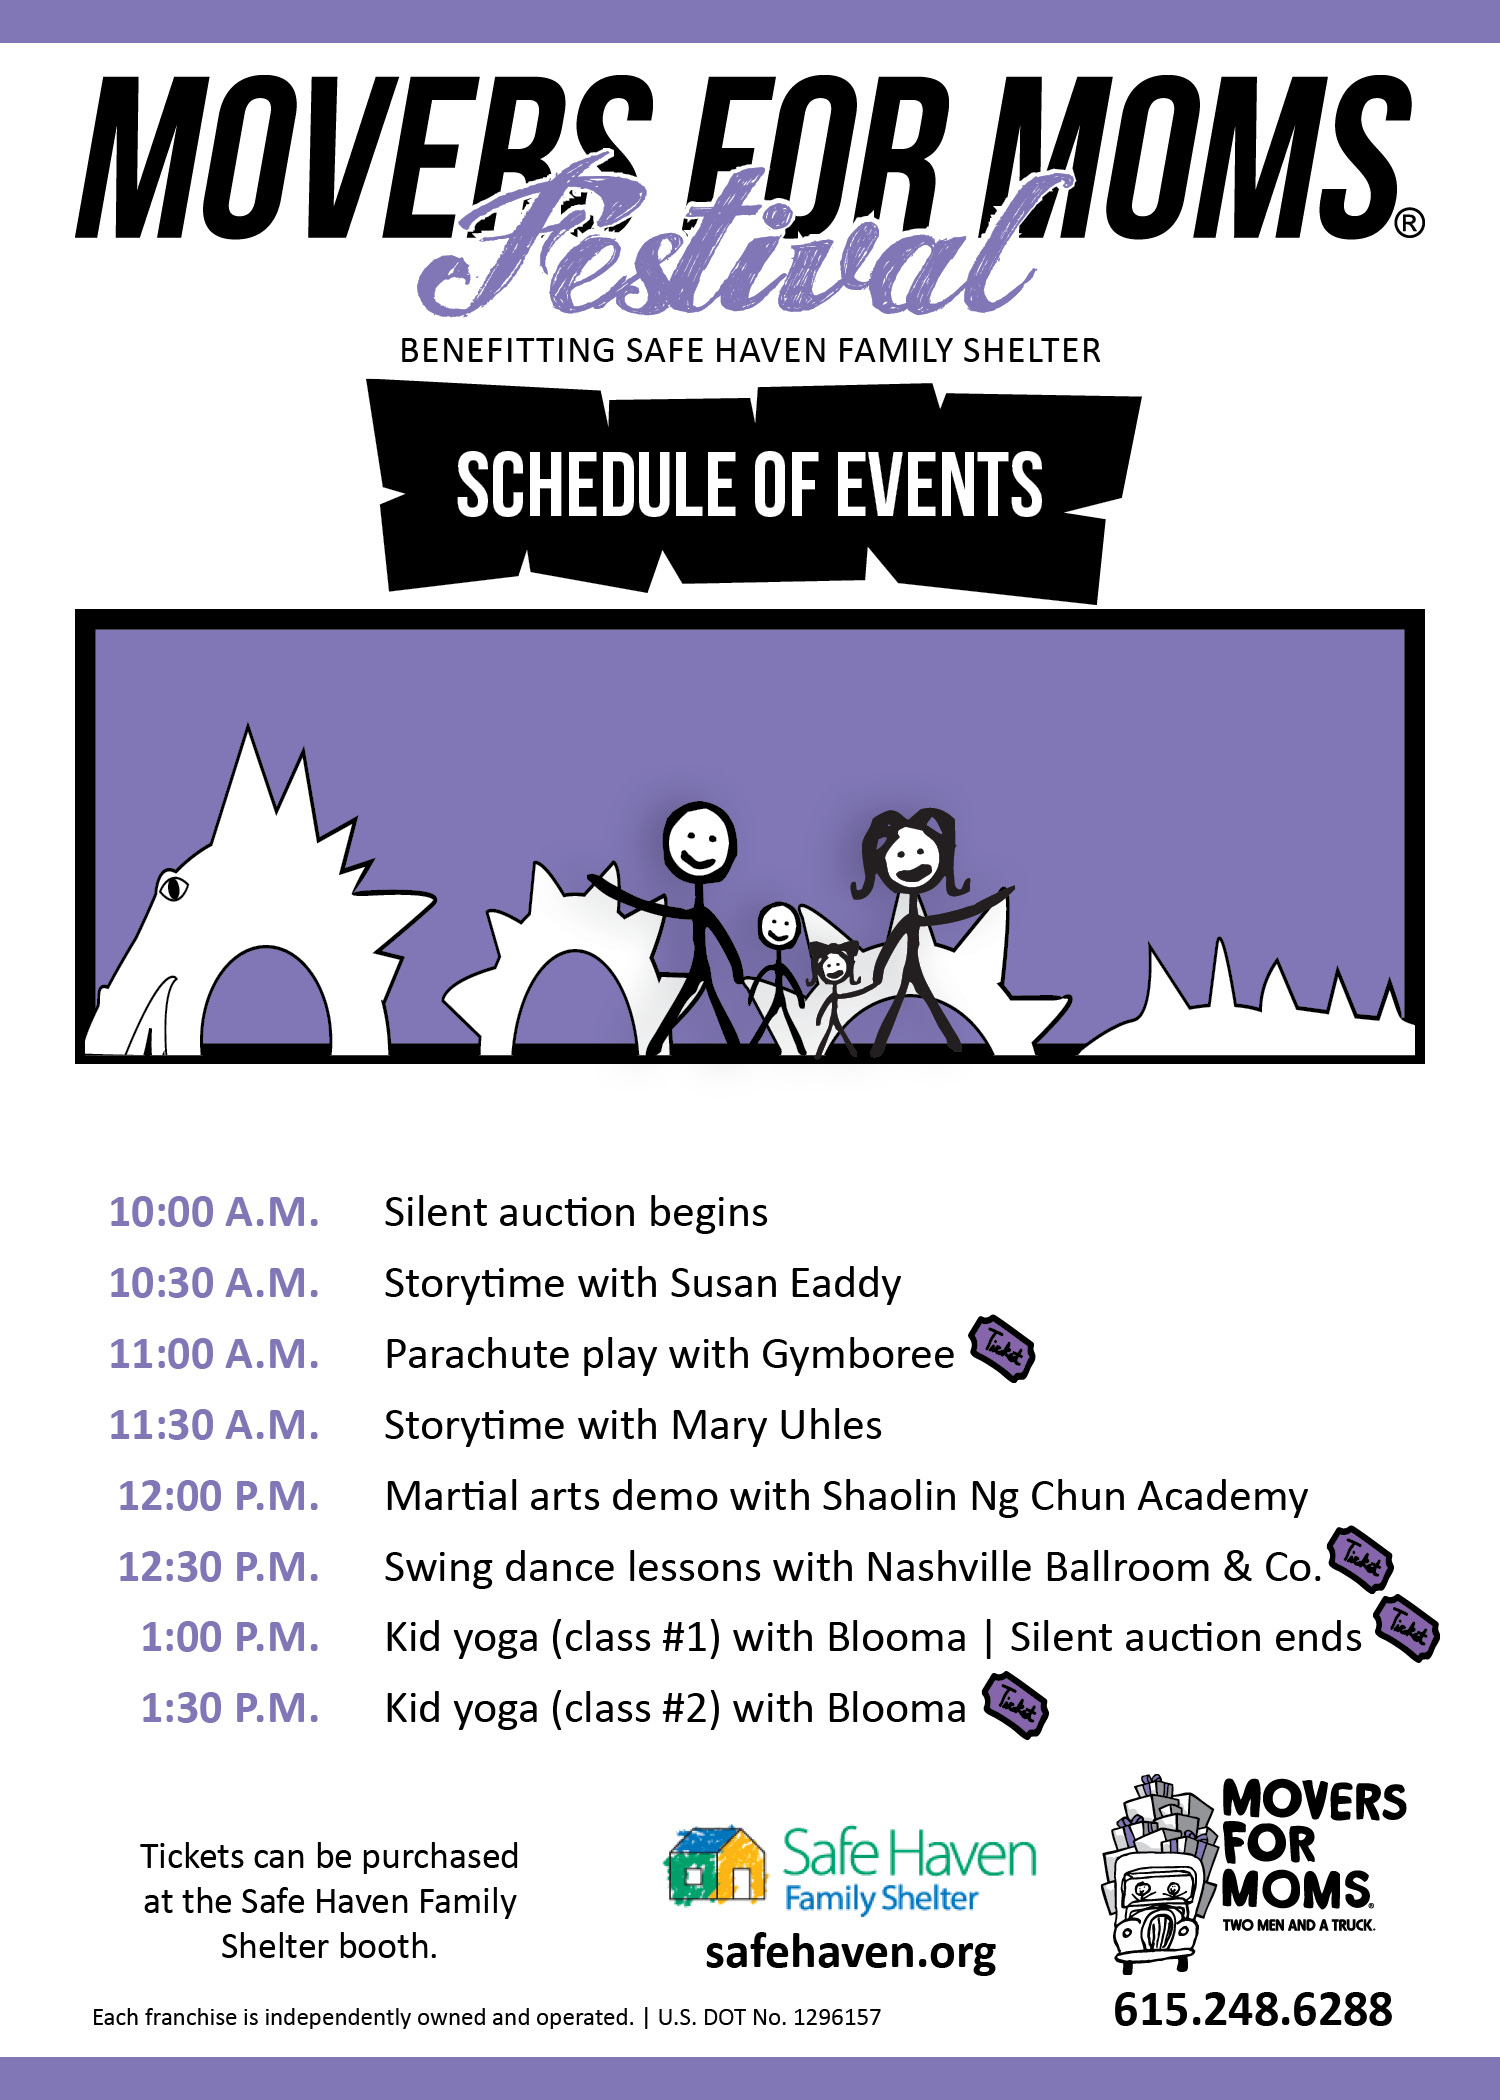 Schedule of Events for the Movers for Moms Festival in Nashville